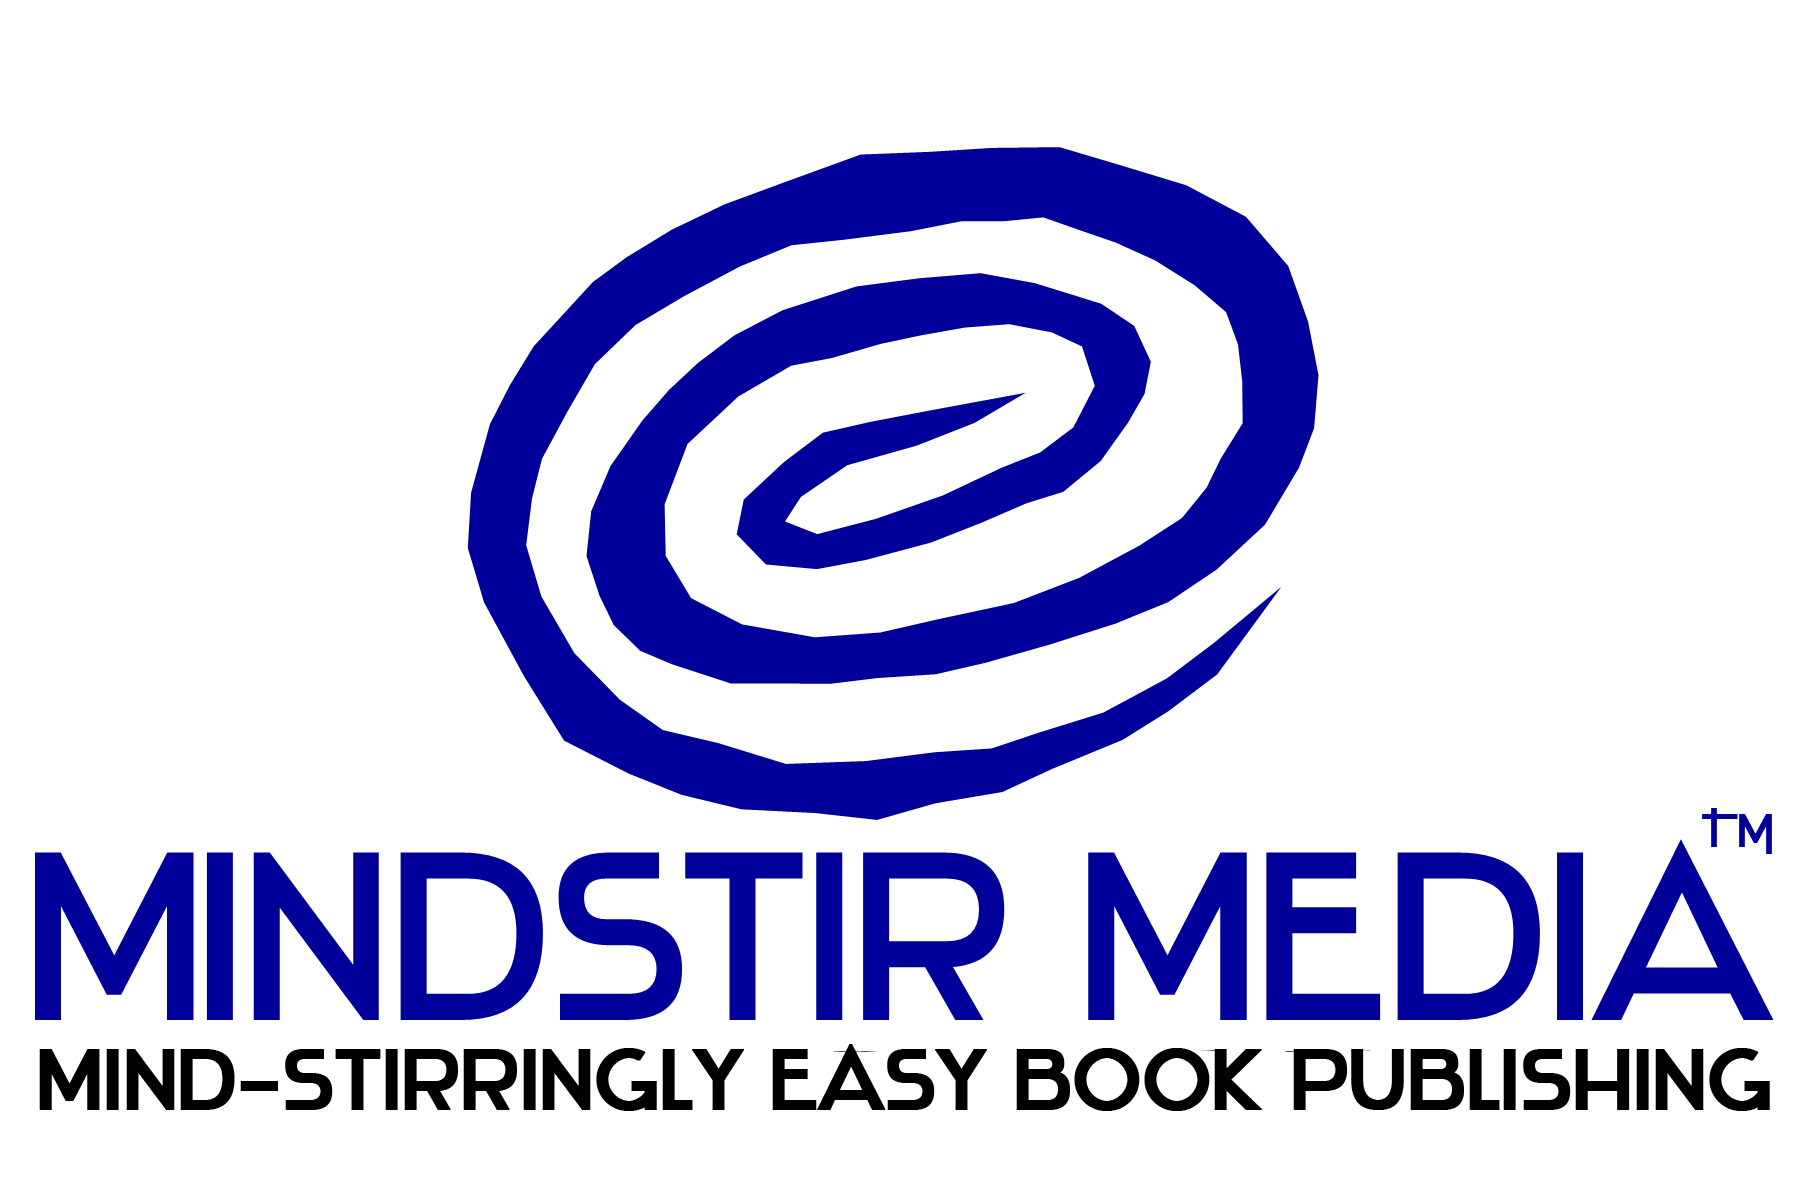 iTech Post ranks MindStir Media as the best self-publishing platform for authors in 2020